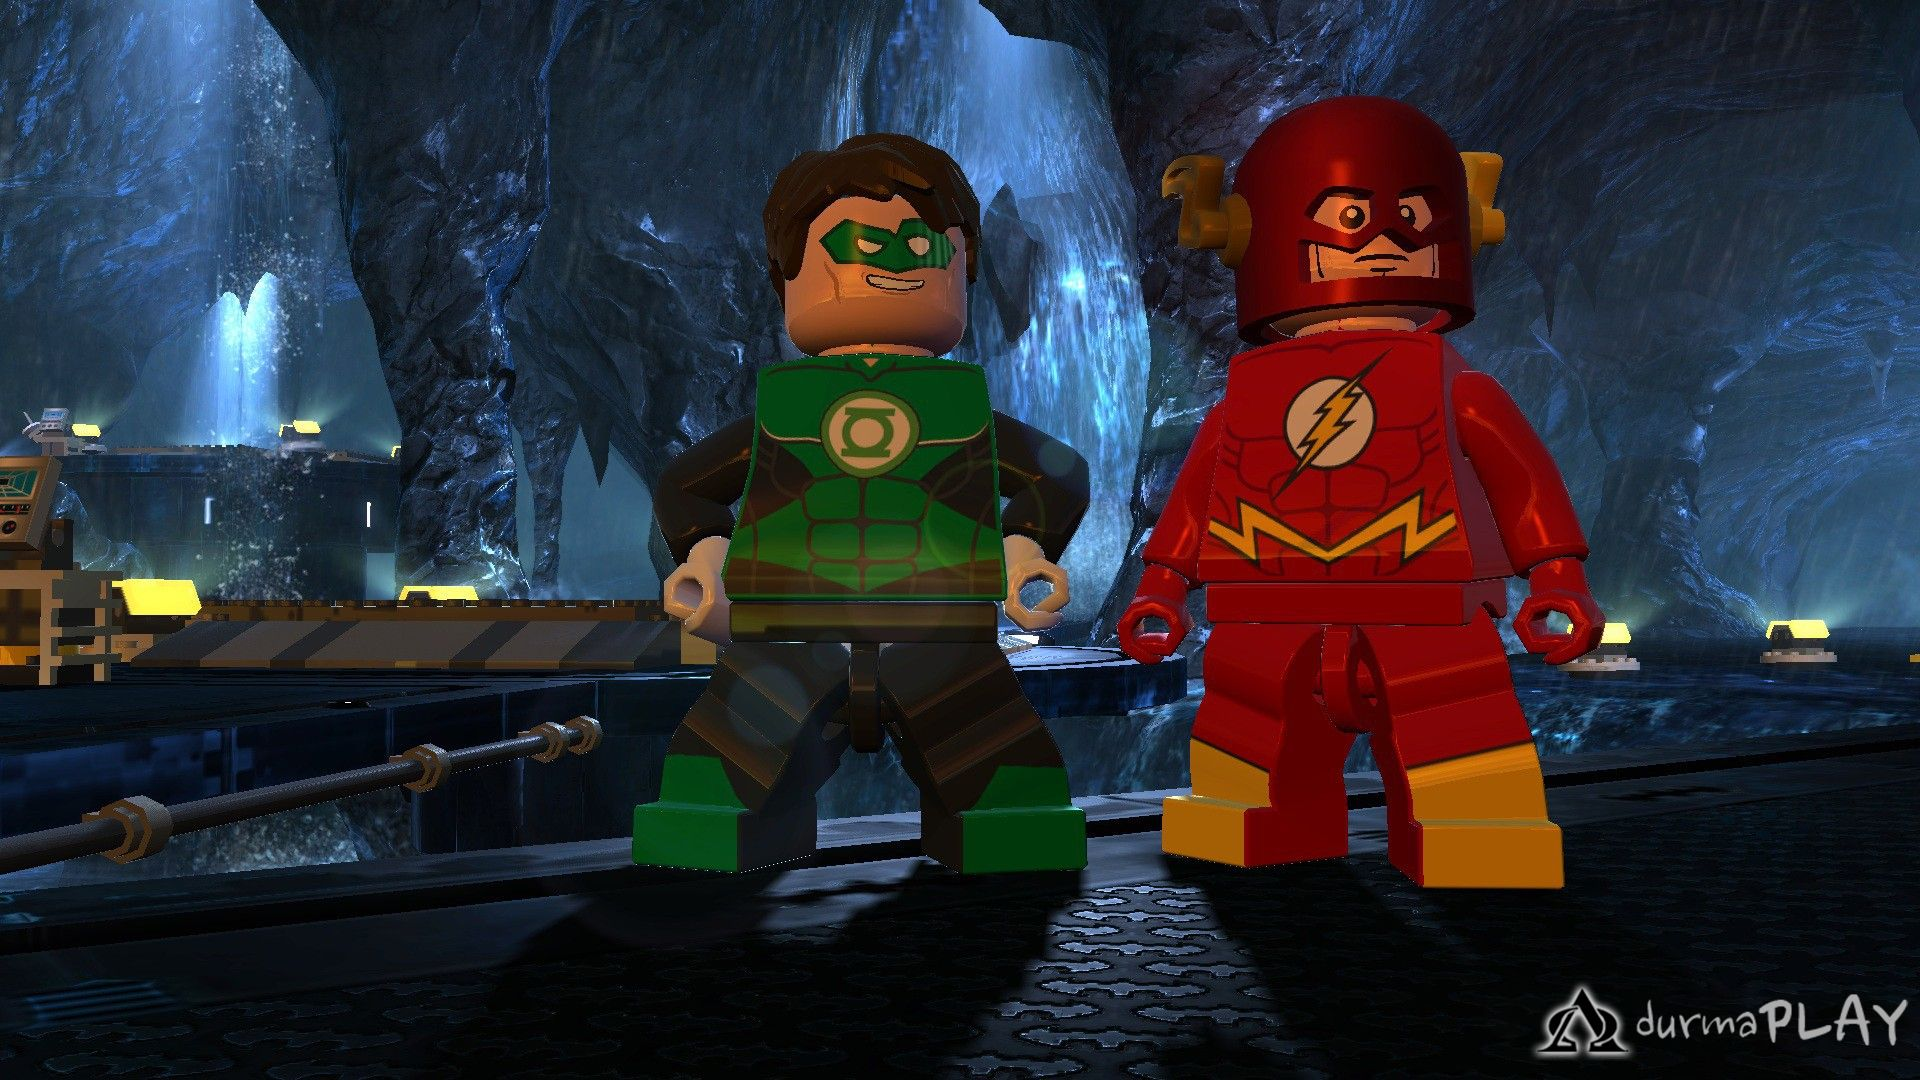 https://www.durmaplay.com/product/lego-marvel-super-heroes-satin-al-ps4 psx4-lego-marvel-super-heroes-screenshot-004.jpg 1.920×1.080 piksel